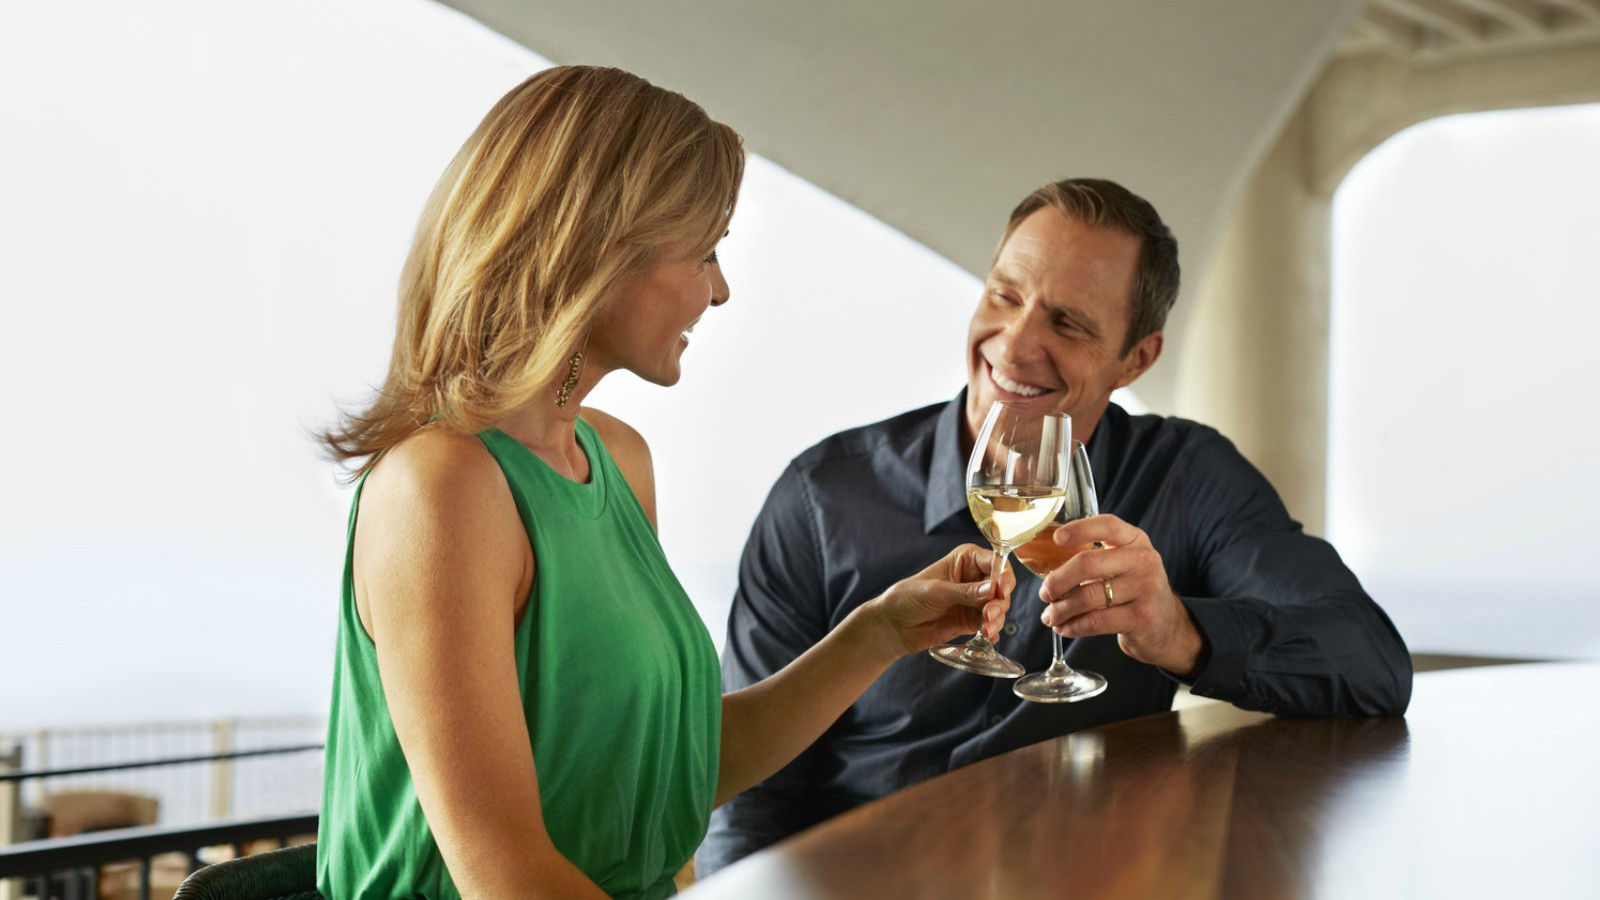 Sheraton Wilmington South Hotel - Wine and Dine Package